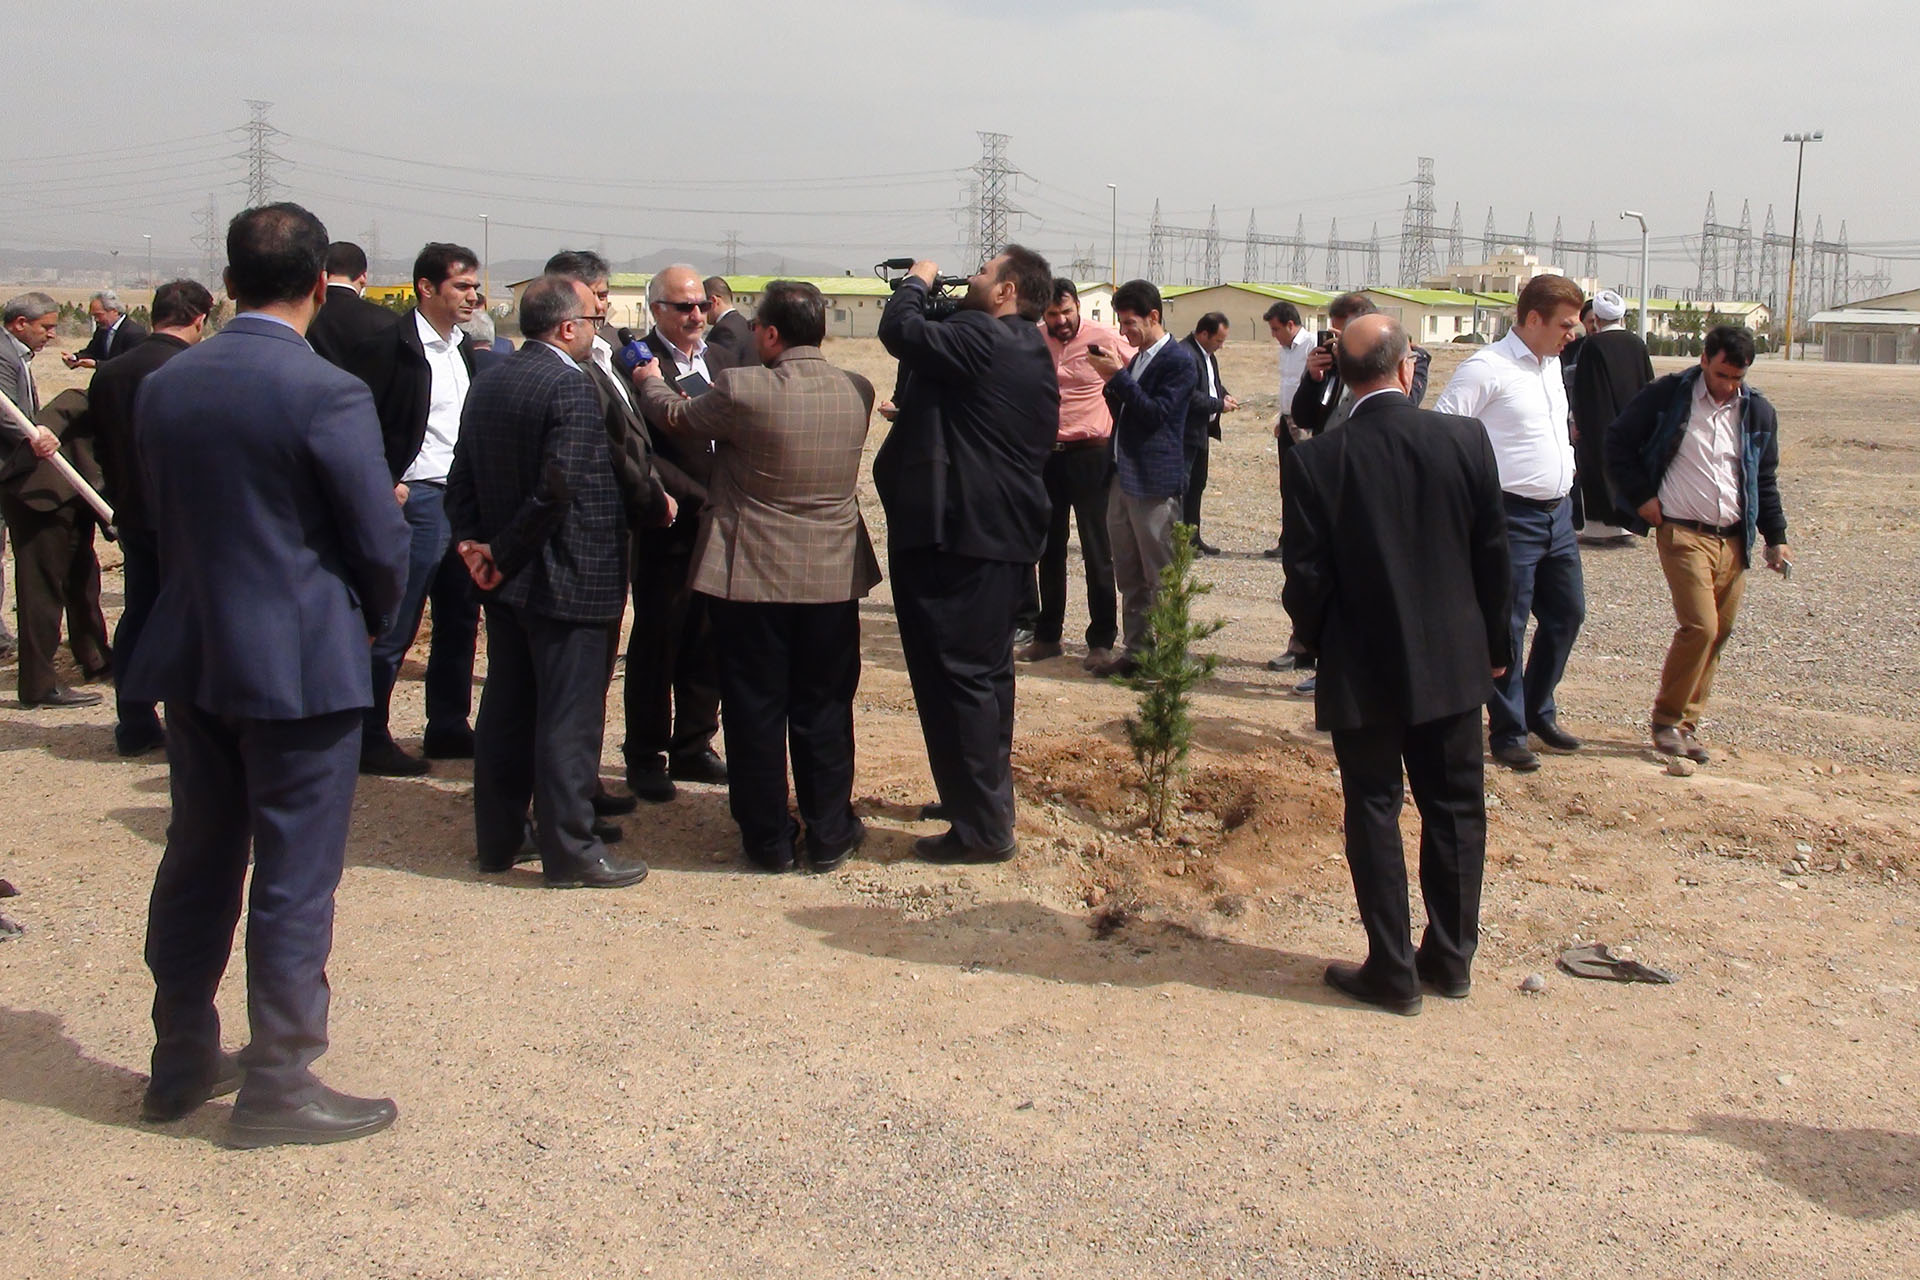 Forestation Project Around the Rudshur Power Plant Started